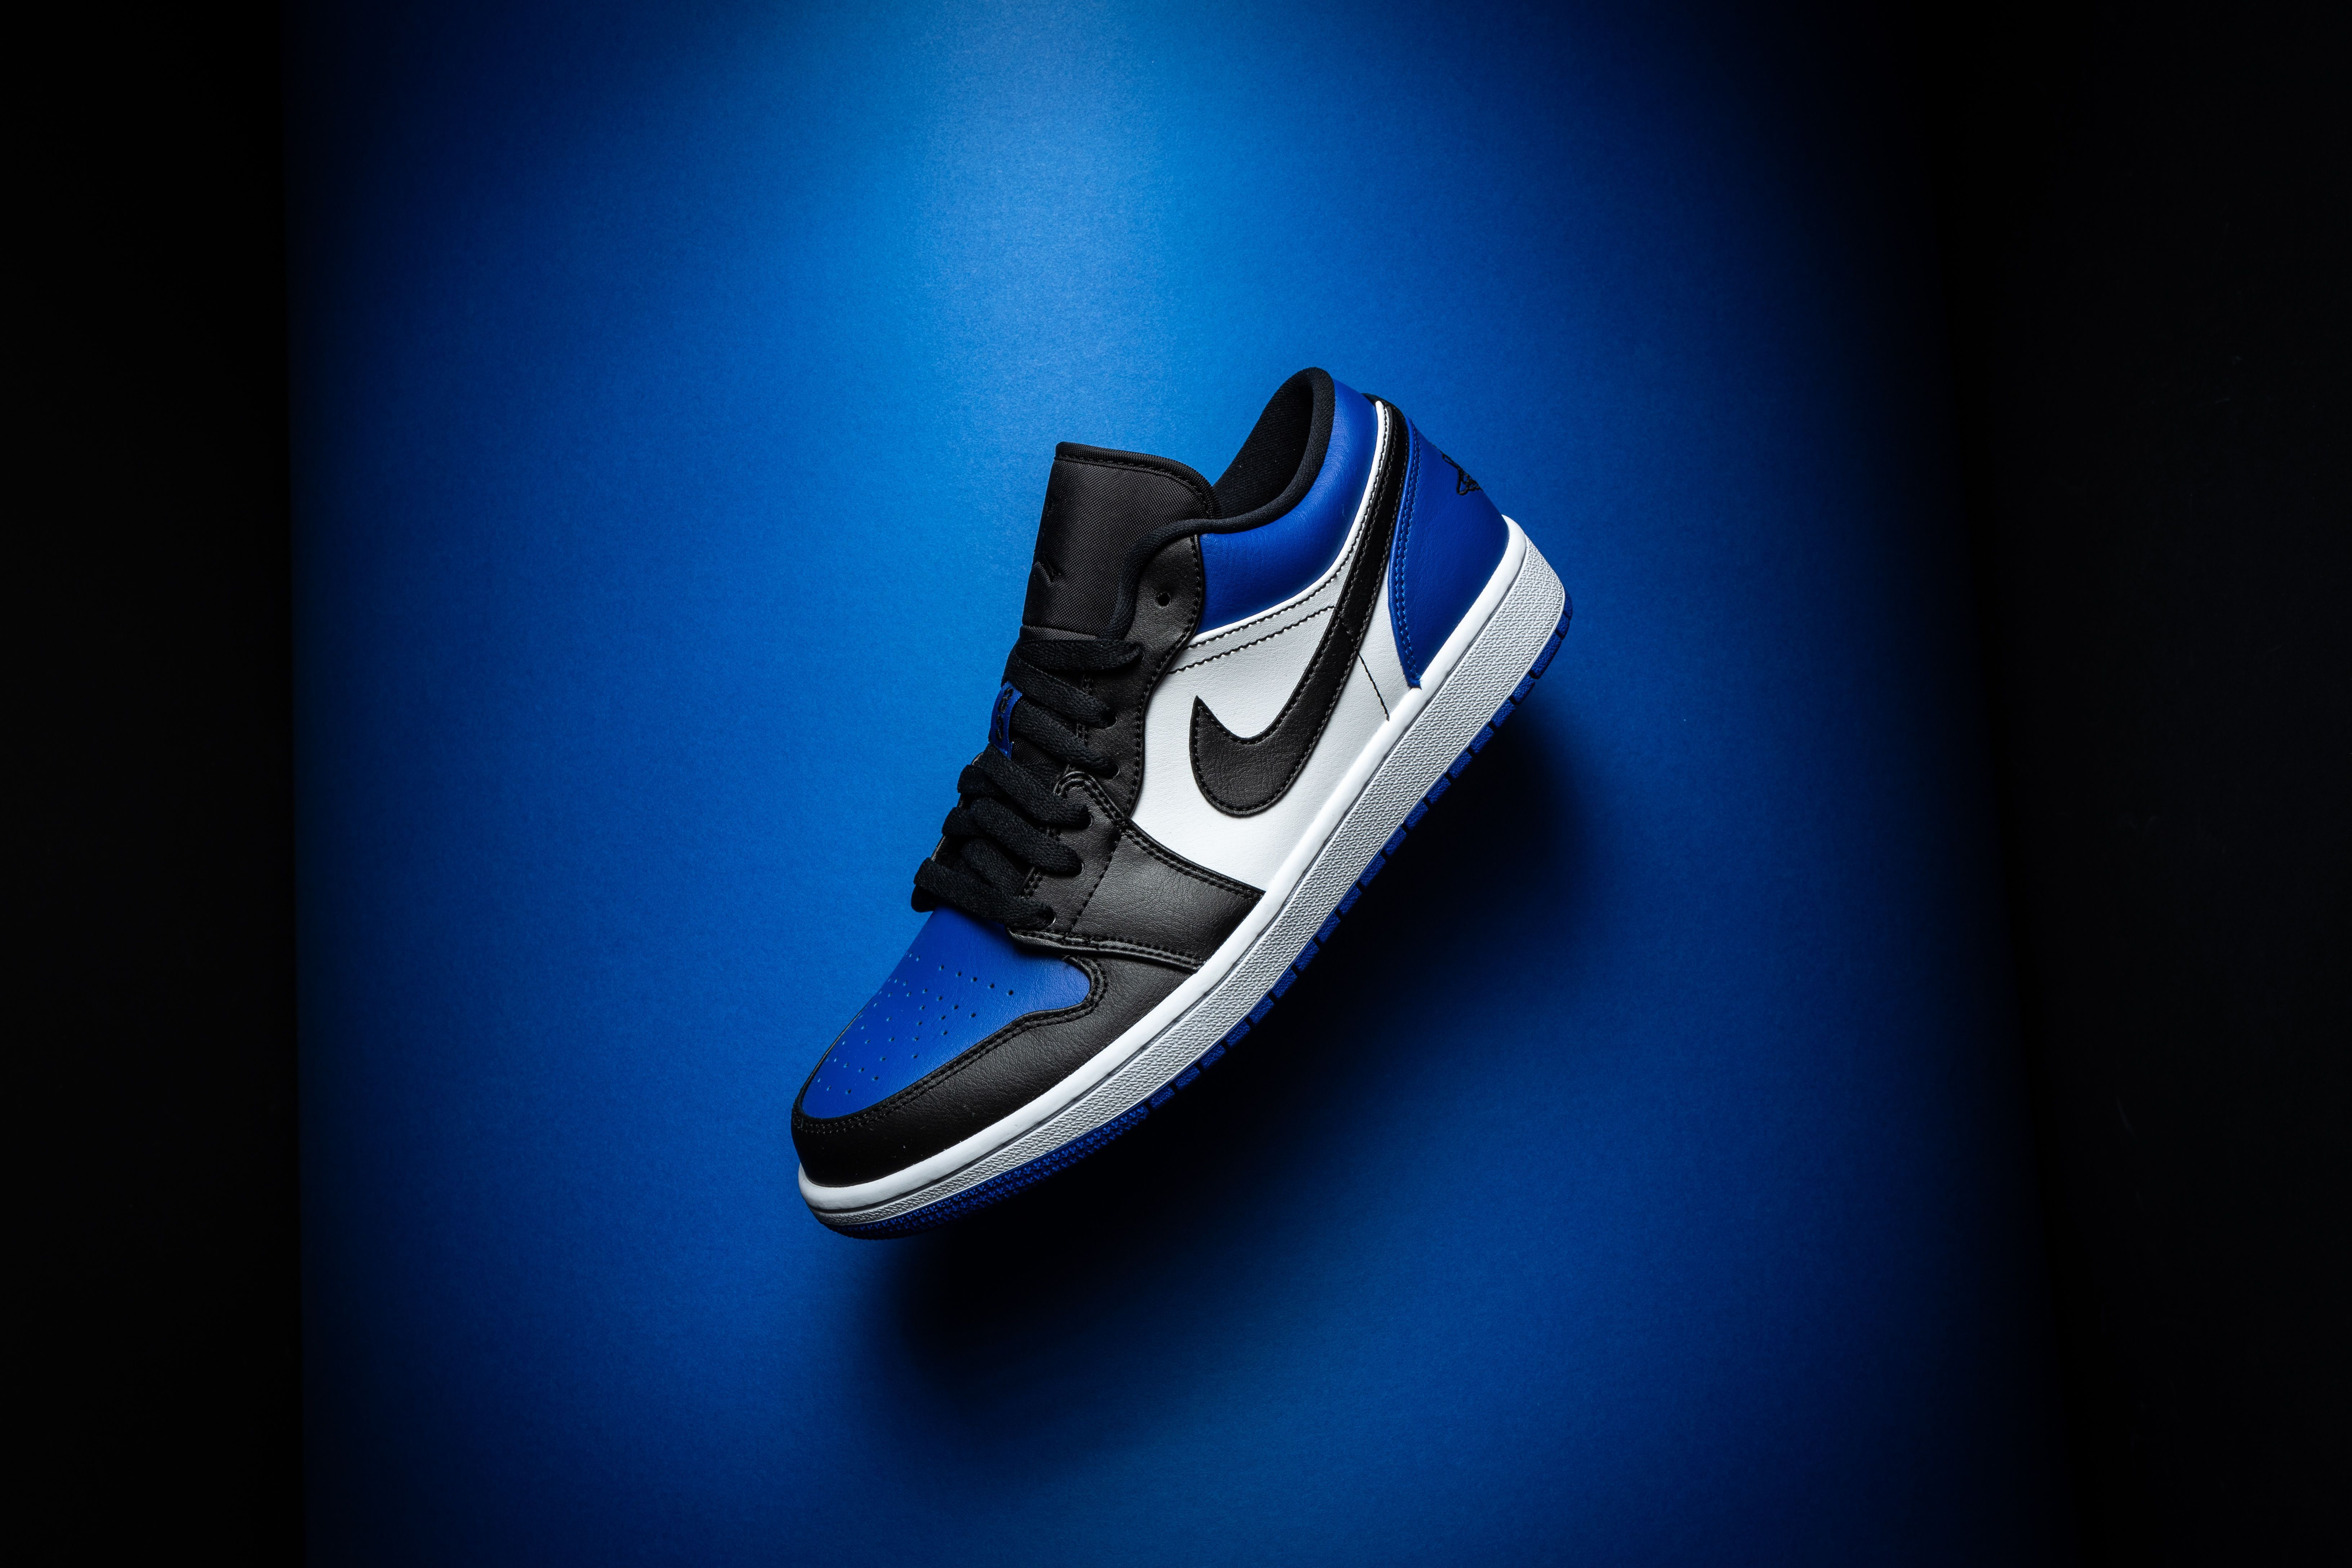 Air Jordan 1 Low Royal Toe Cq9446 400 2020 With Images